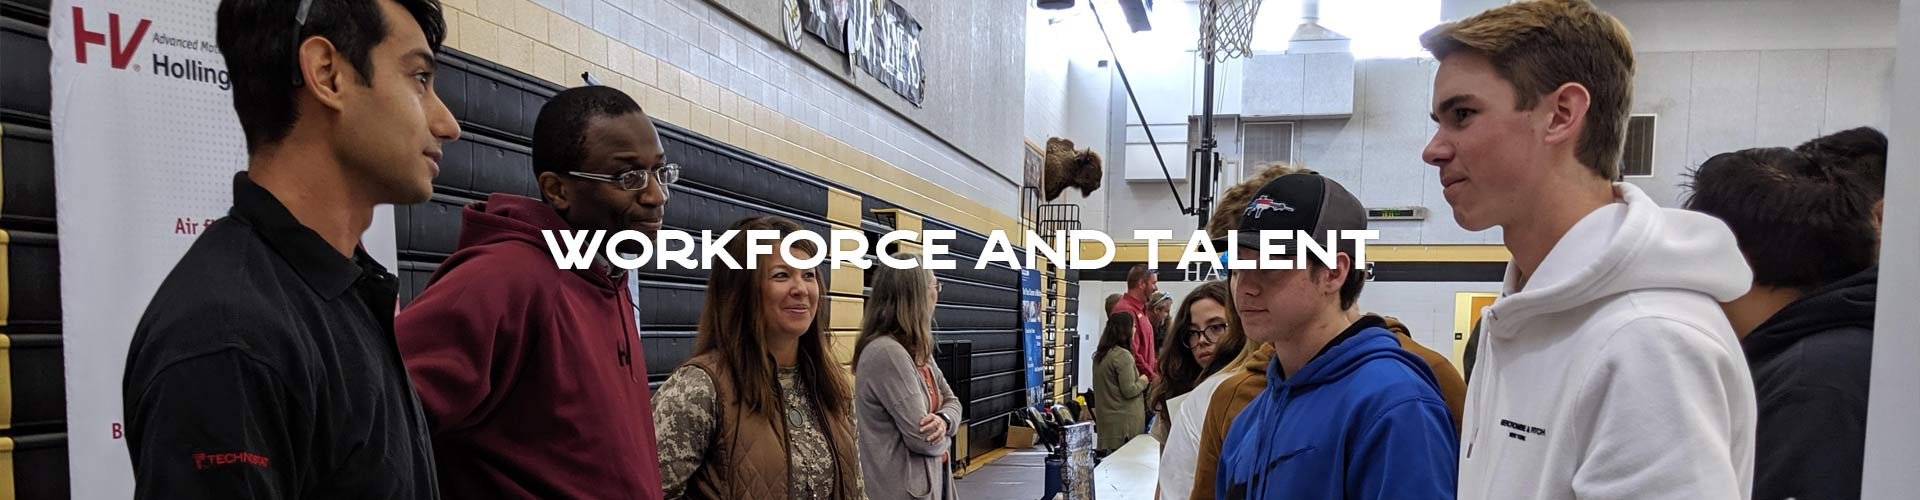 Workforce and Talent